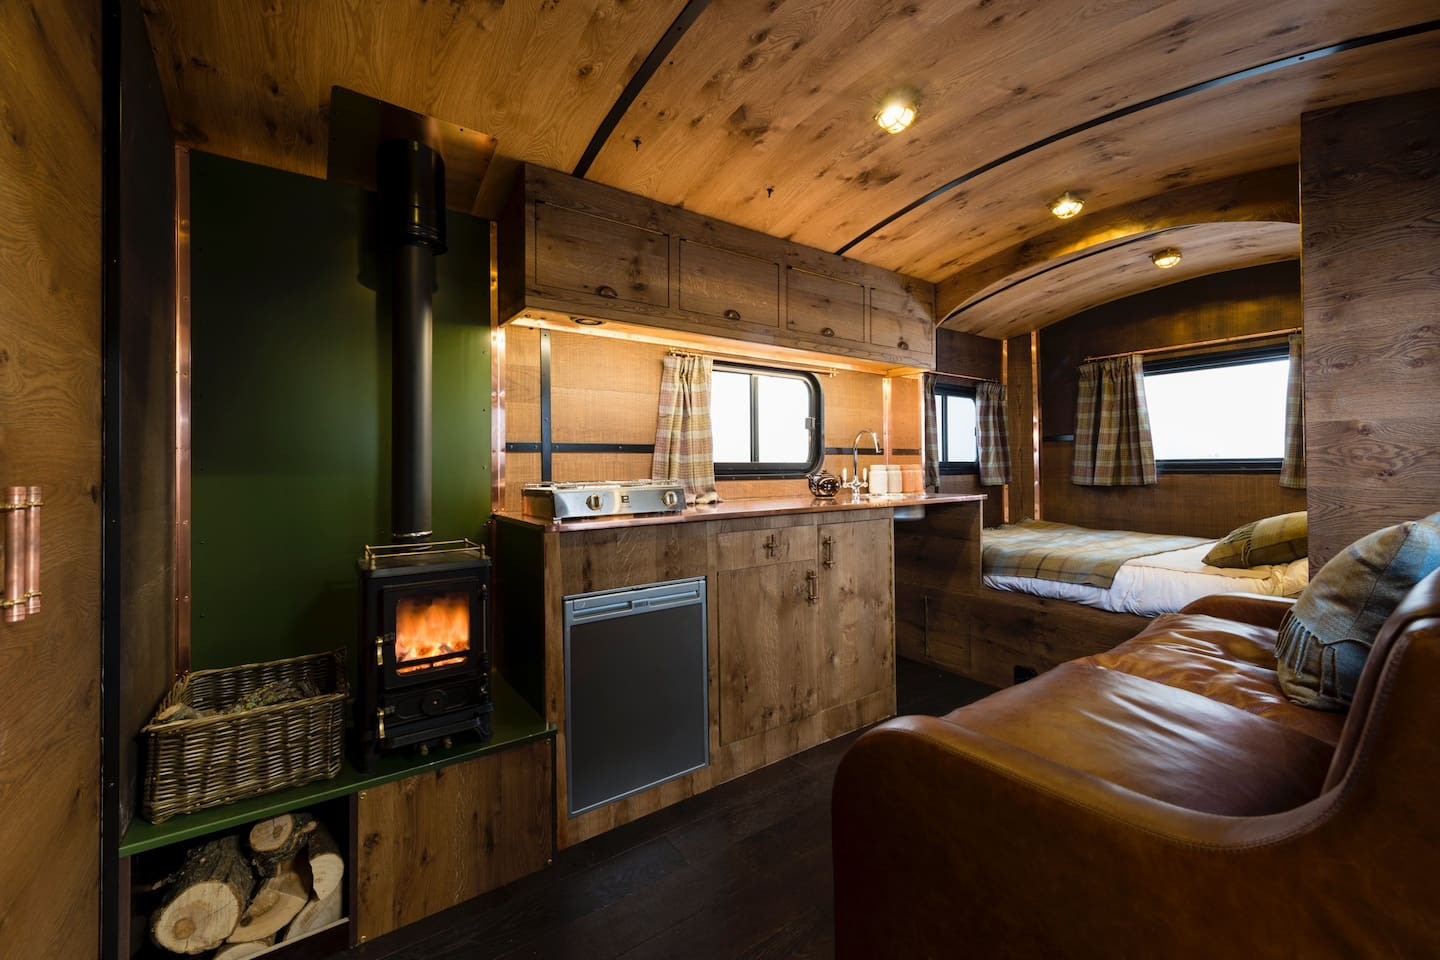 Gorgeous luxury interior. Pippy oak, copper work tops, wood burner and cosy sleigh bed.